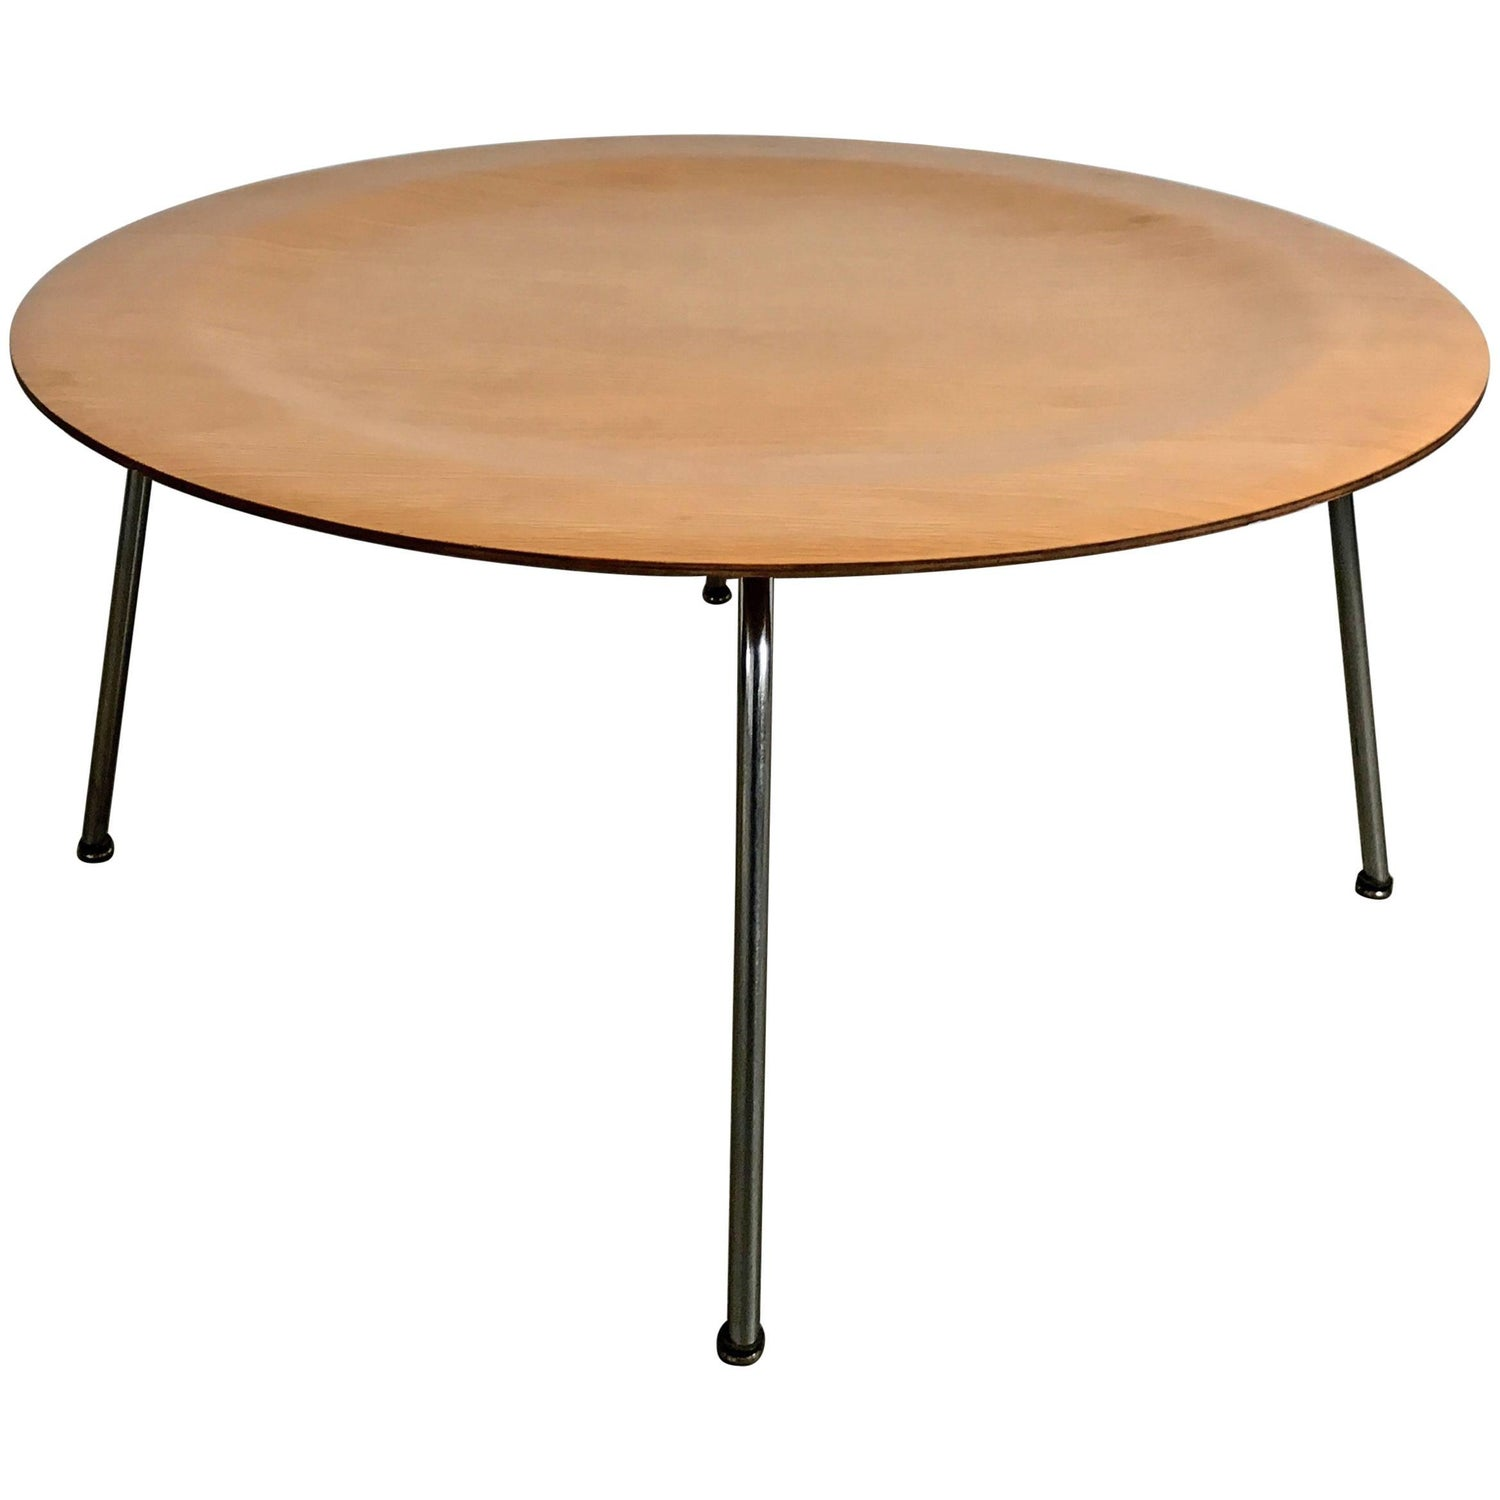 Charles and Ray Eames Coffee and Cocktail Tables 15 For Sale at